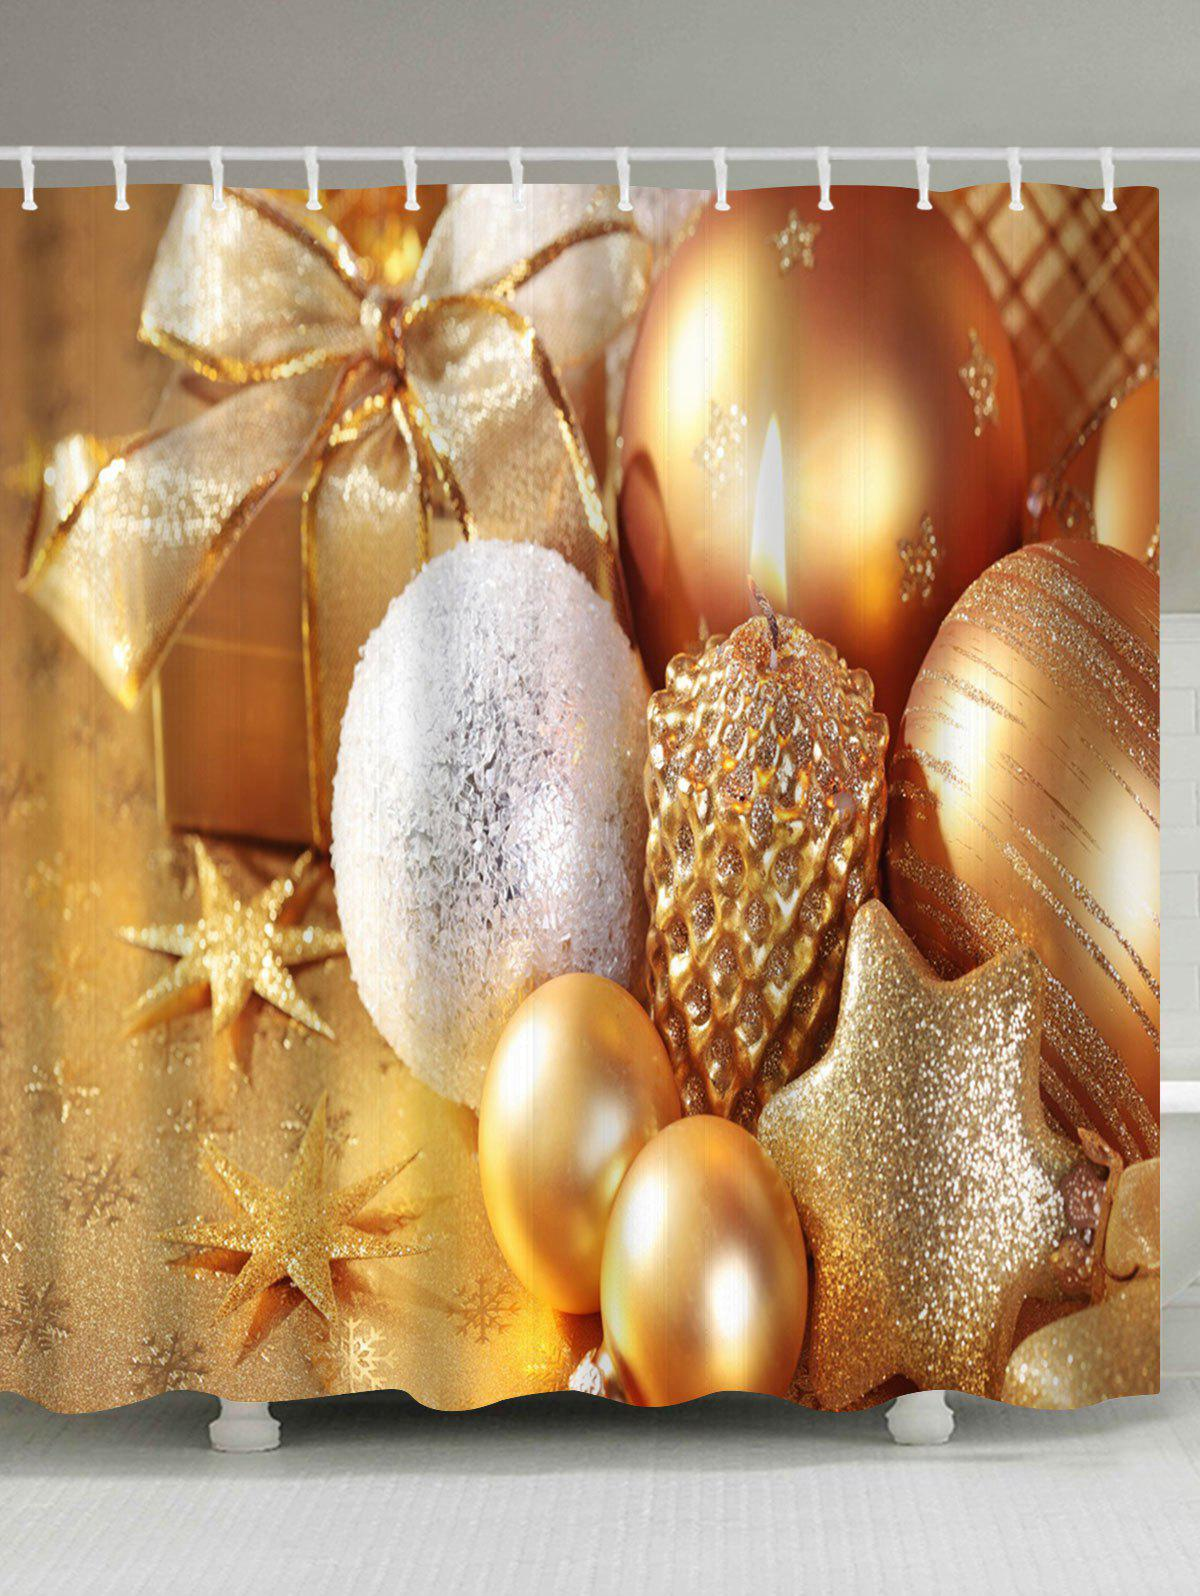 Waterproof Christmas Candle Ornaments Shower CurtainHOME<br><br>Size: W71 INCH * L79 INCH; Color: GOLDEN; Products Type: Shower Curtains; Materials: Polyester; Style: Festival; Number of Hook Holes: W59 inch*L71 inch: 10; W71 inch*L71 inch: 12; W71 inch*L79 inch: 12; Package Contents: 1 x Shower Curtain 1 x Hooks (Set);